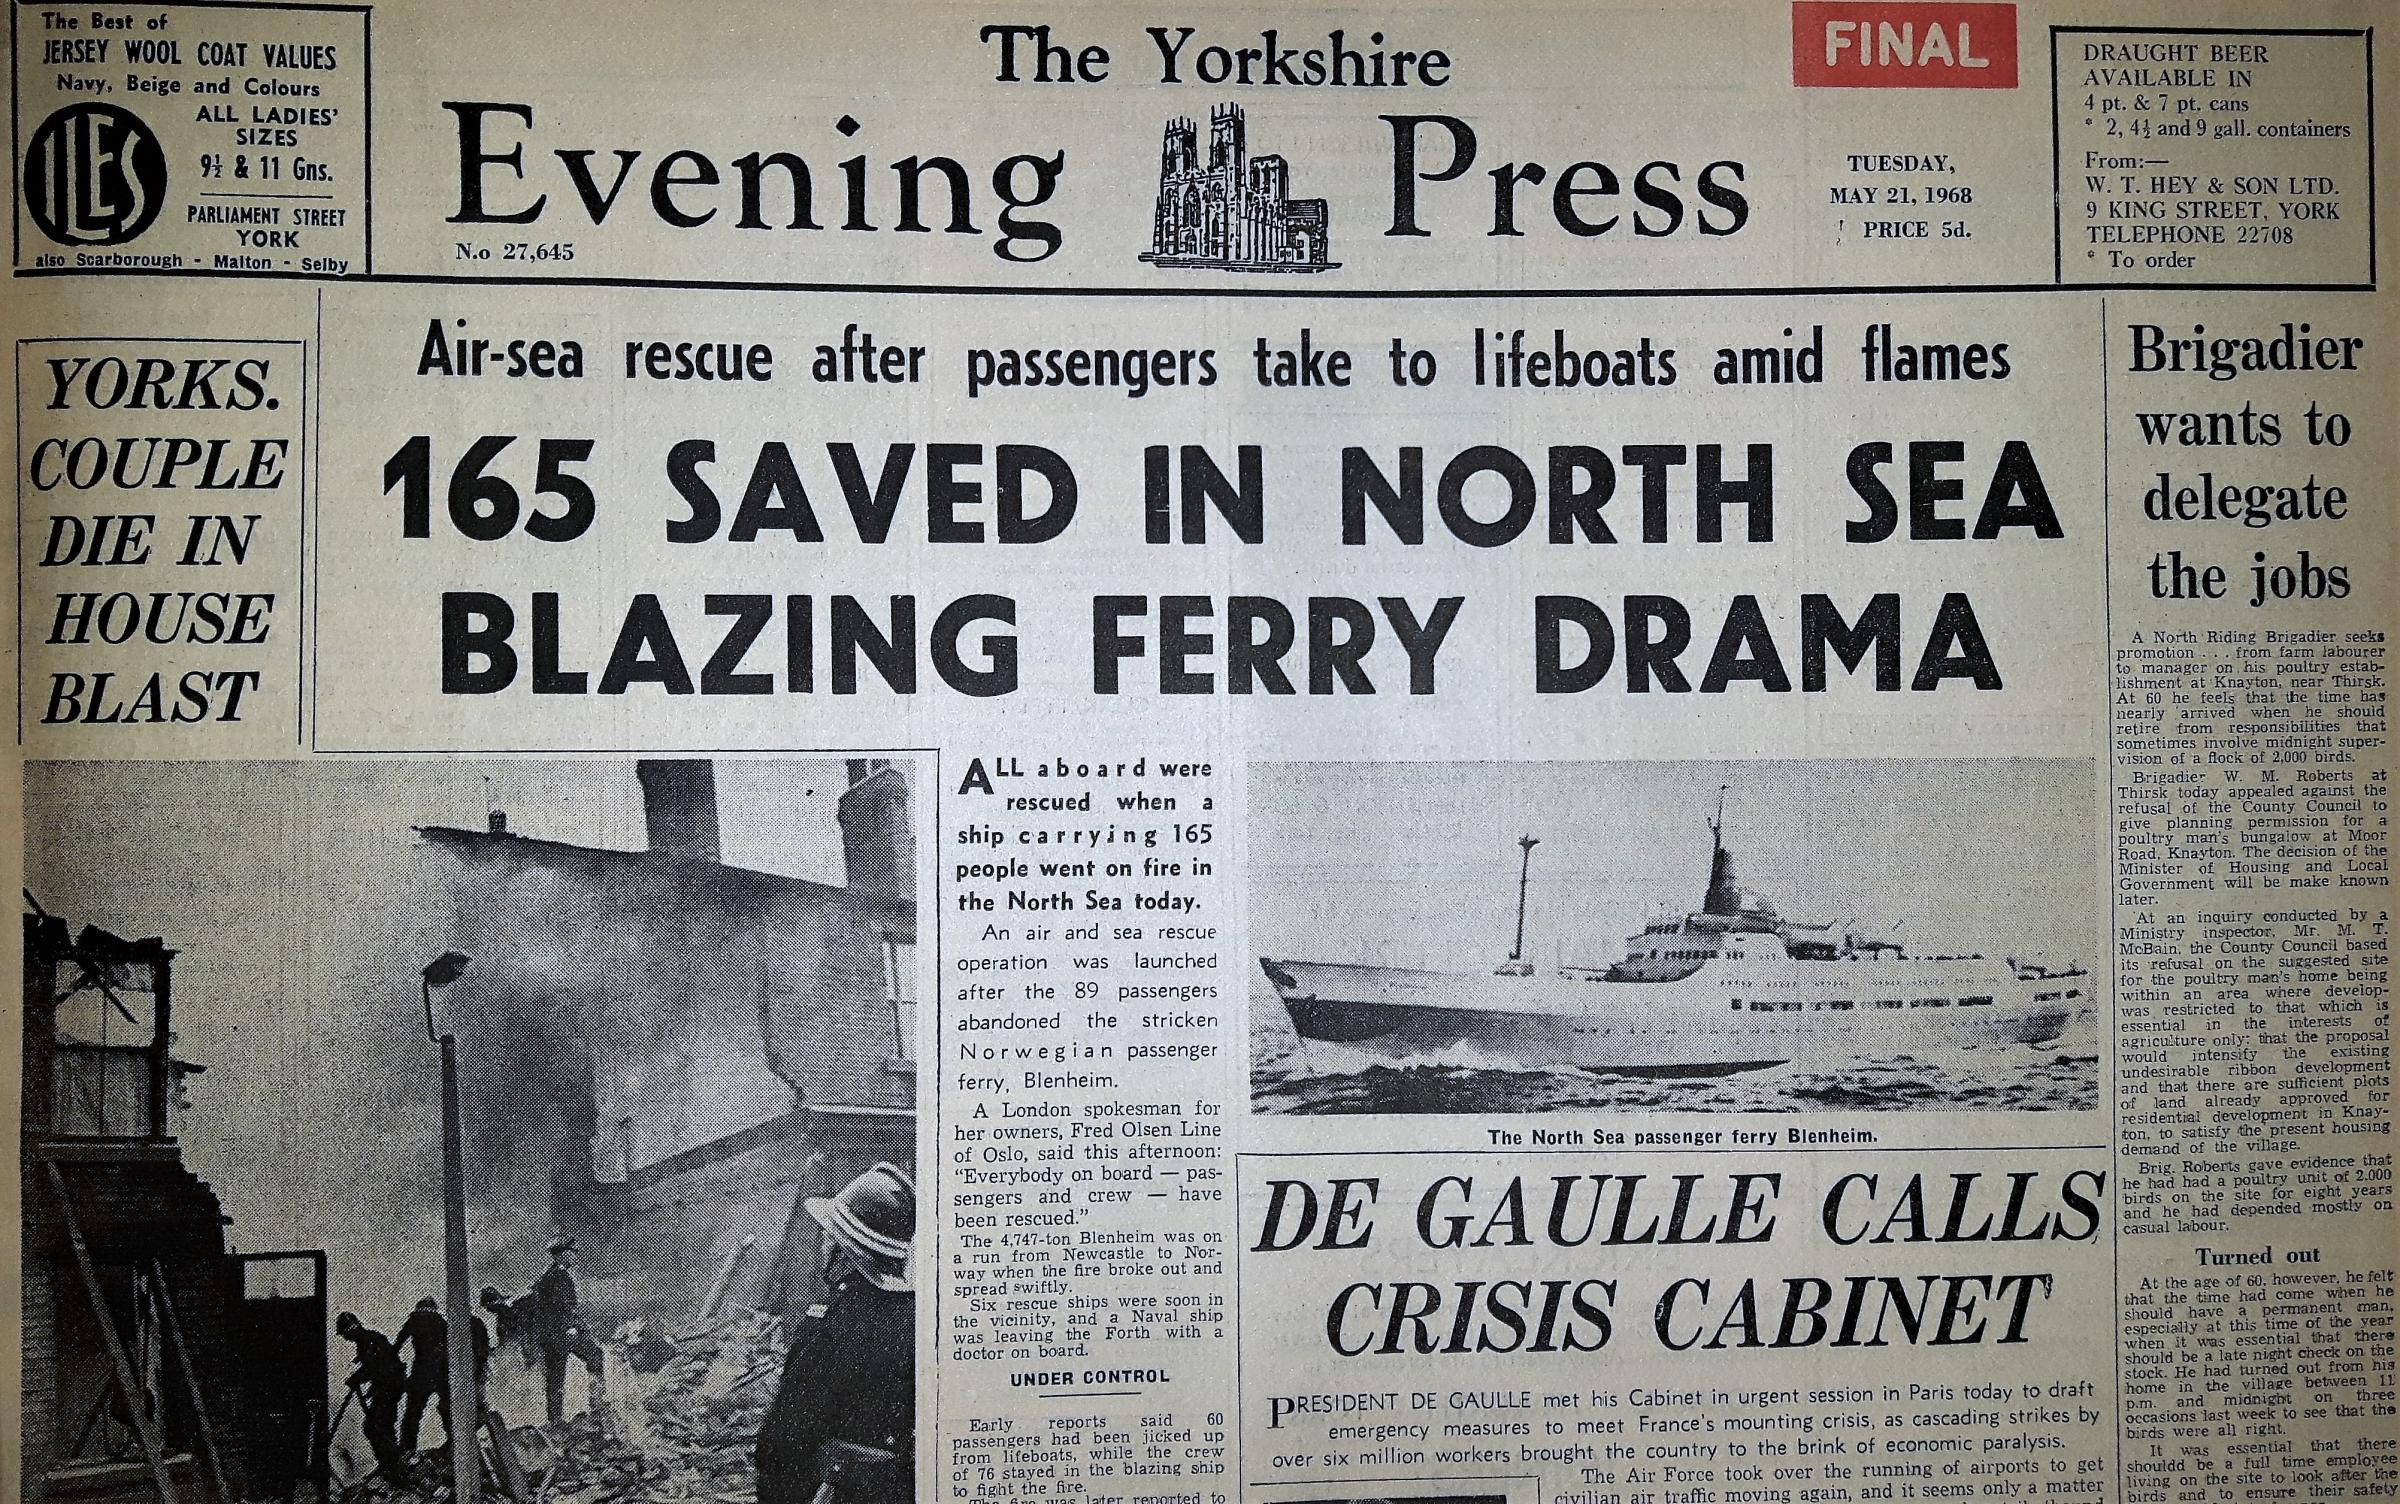 The Yorkshire Evening Press front page from May 21, 1968